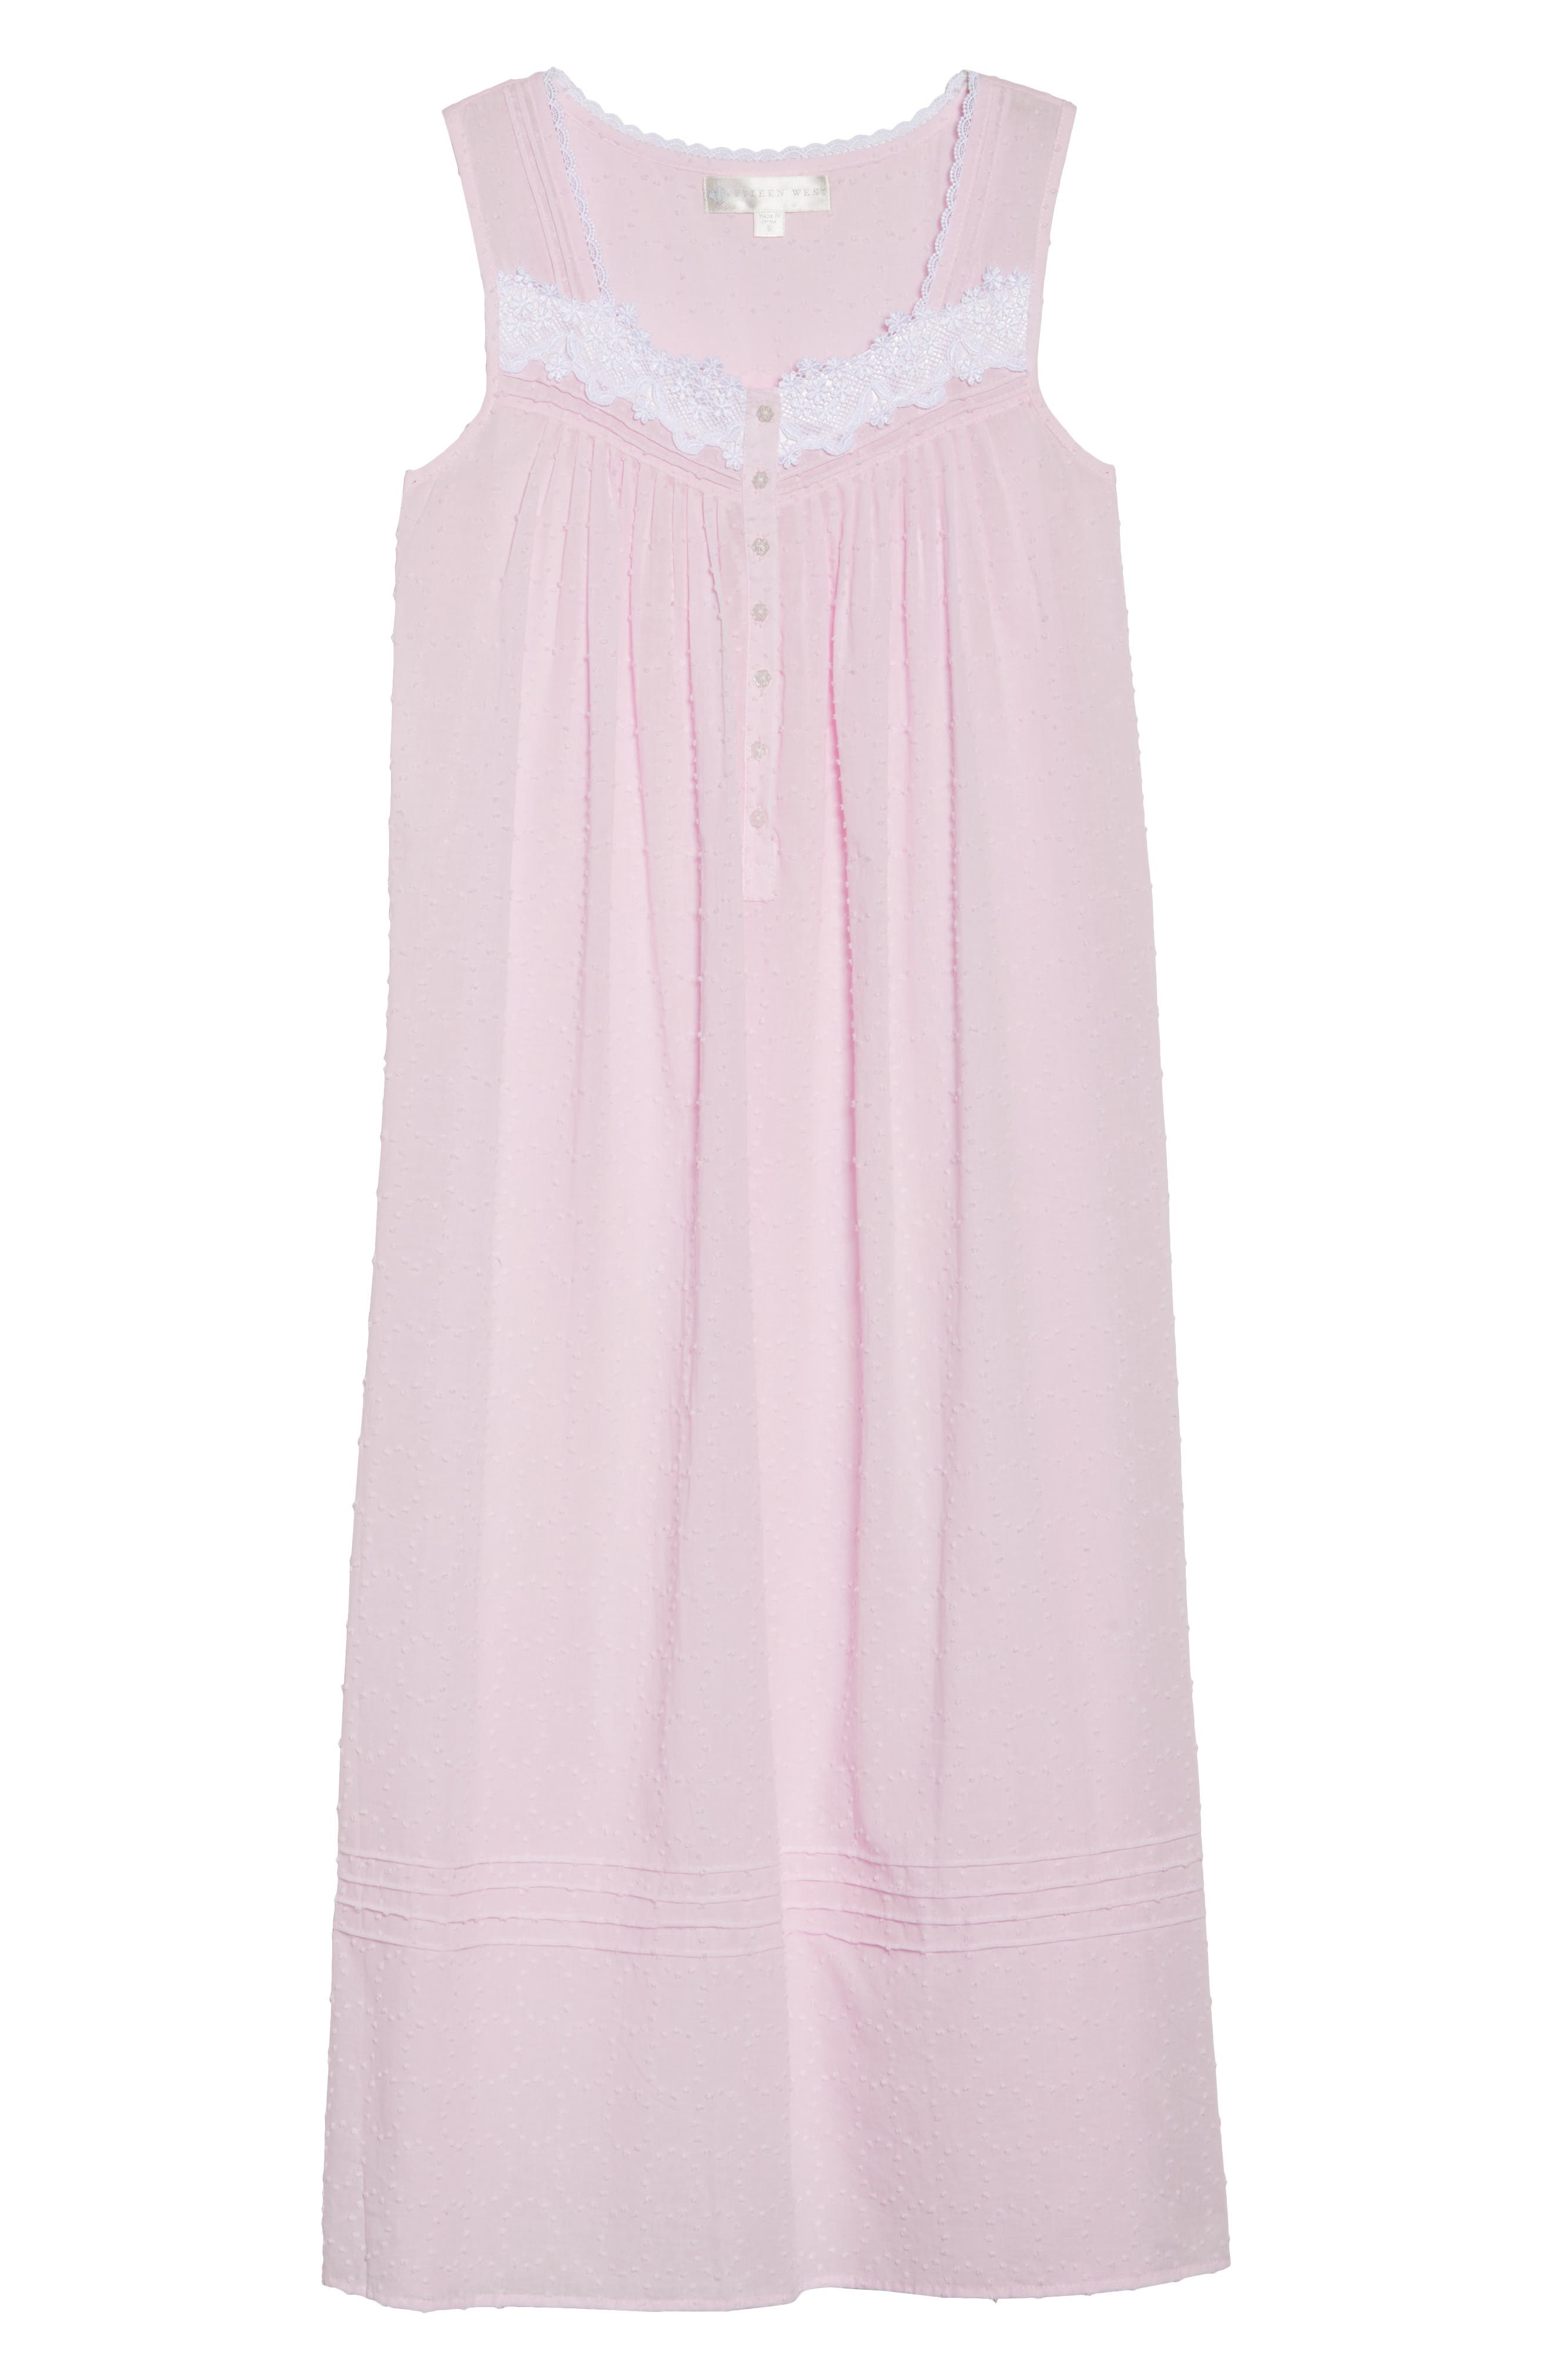 Swiss Dot Nightgown,                             Alternate thumbnail 4, color,                             Solid Rose Circle Clip Dot